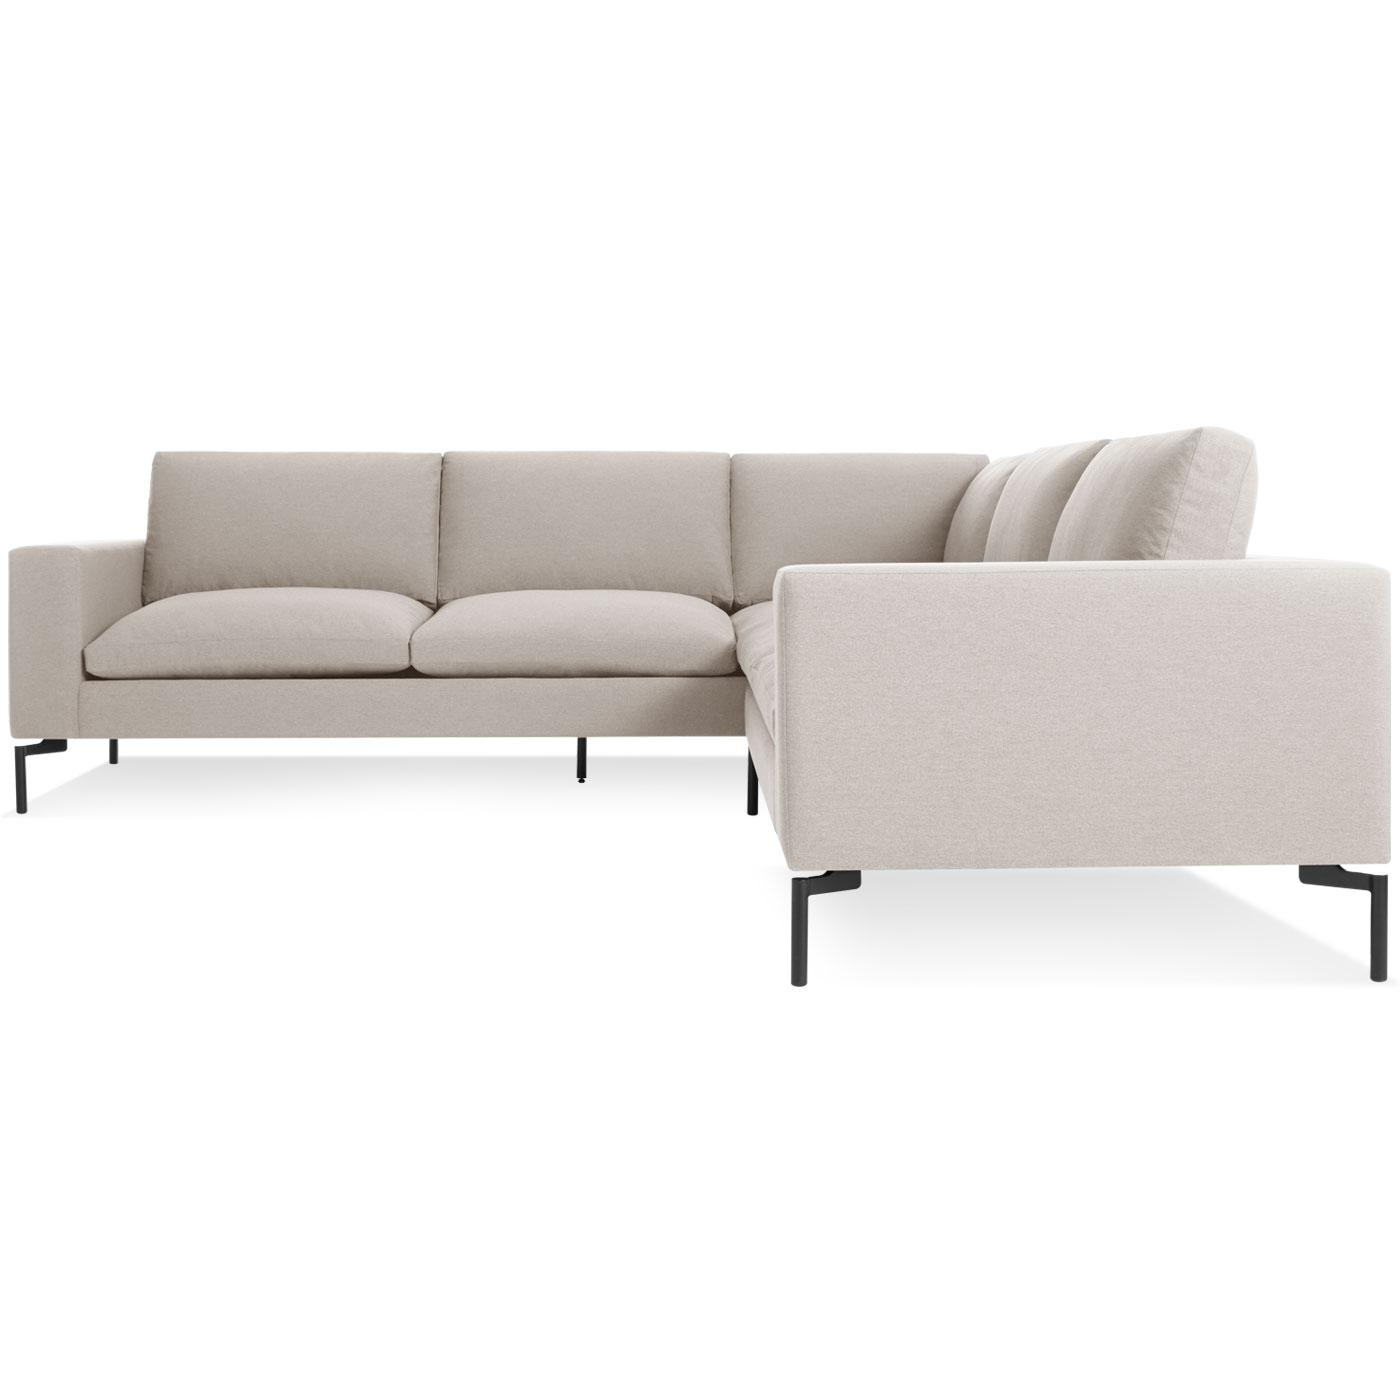 New Standard Small Sectional Sofa – Modern Sofas | Blu Dot Pertaining To Small Modern Sofas (View 7 of 20)